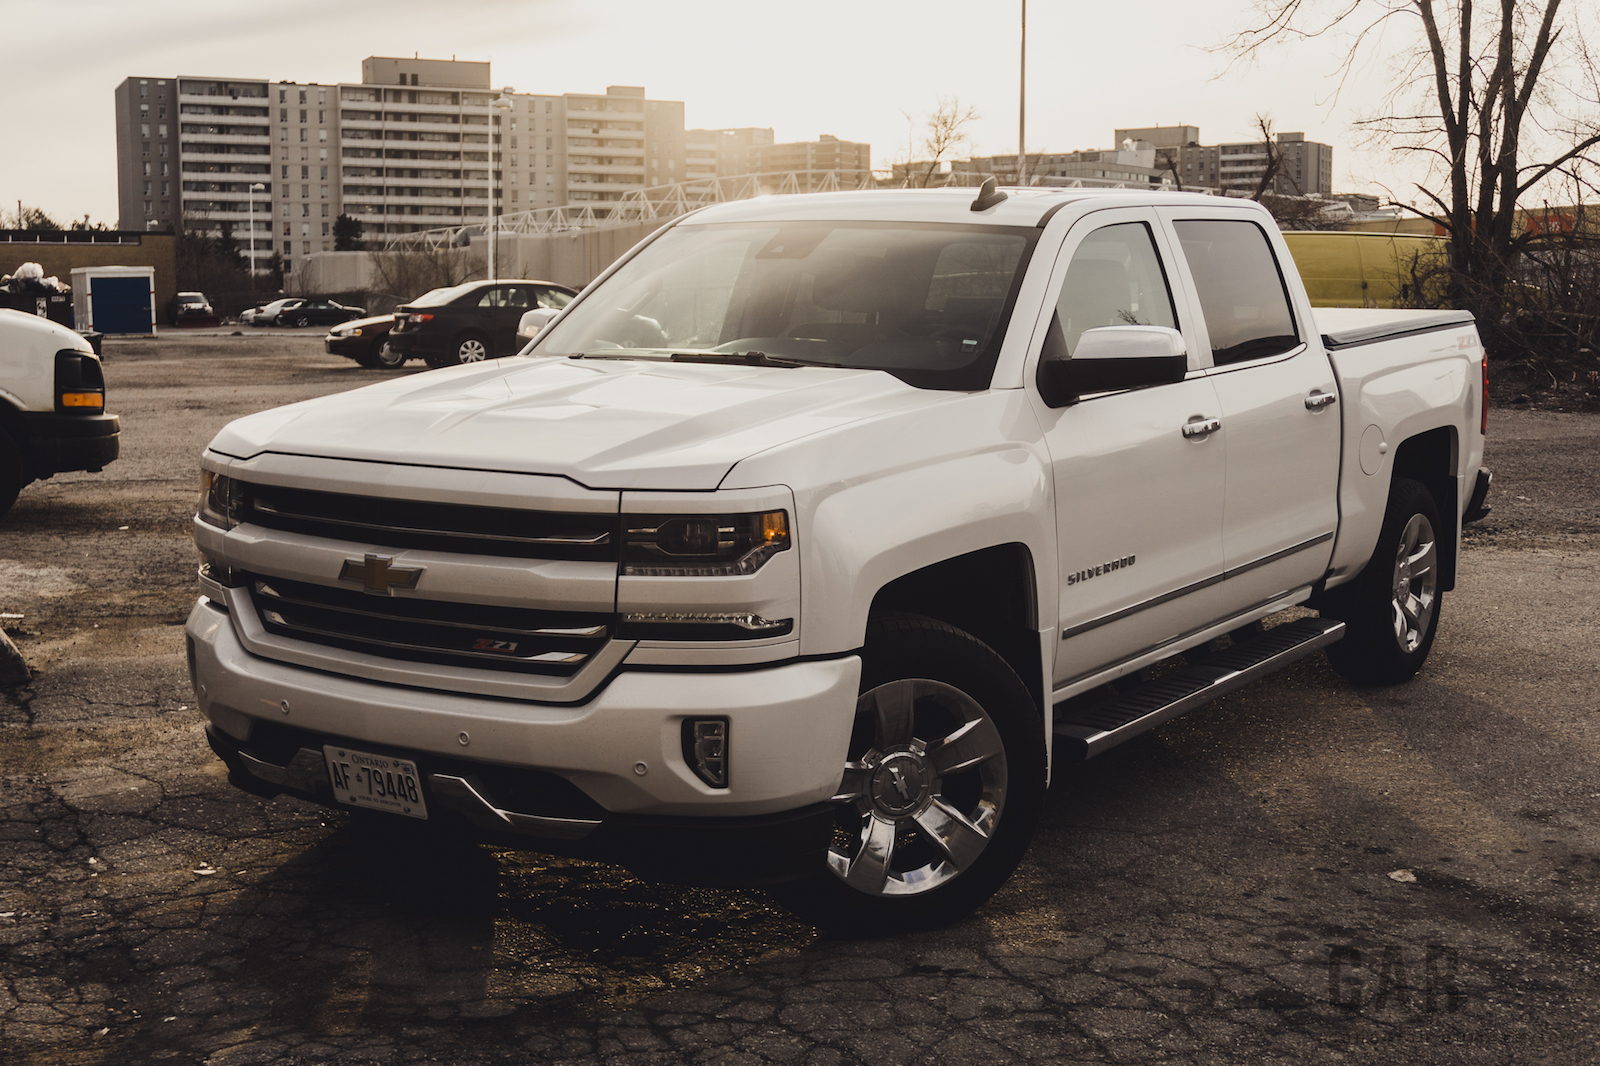 Chevy Silverado Z71 Lifted Best Liftedchevy Years Ago Black 95 Lt1 Engine Diagram Awesome Chevrolet Z White Truck With